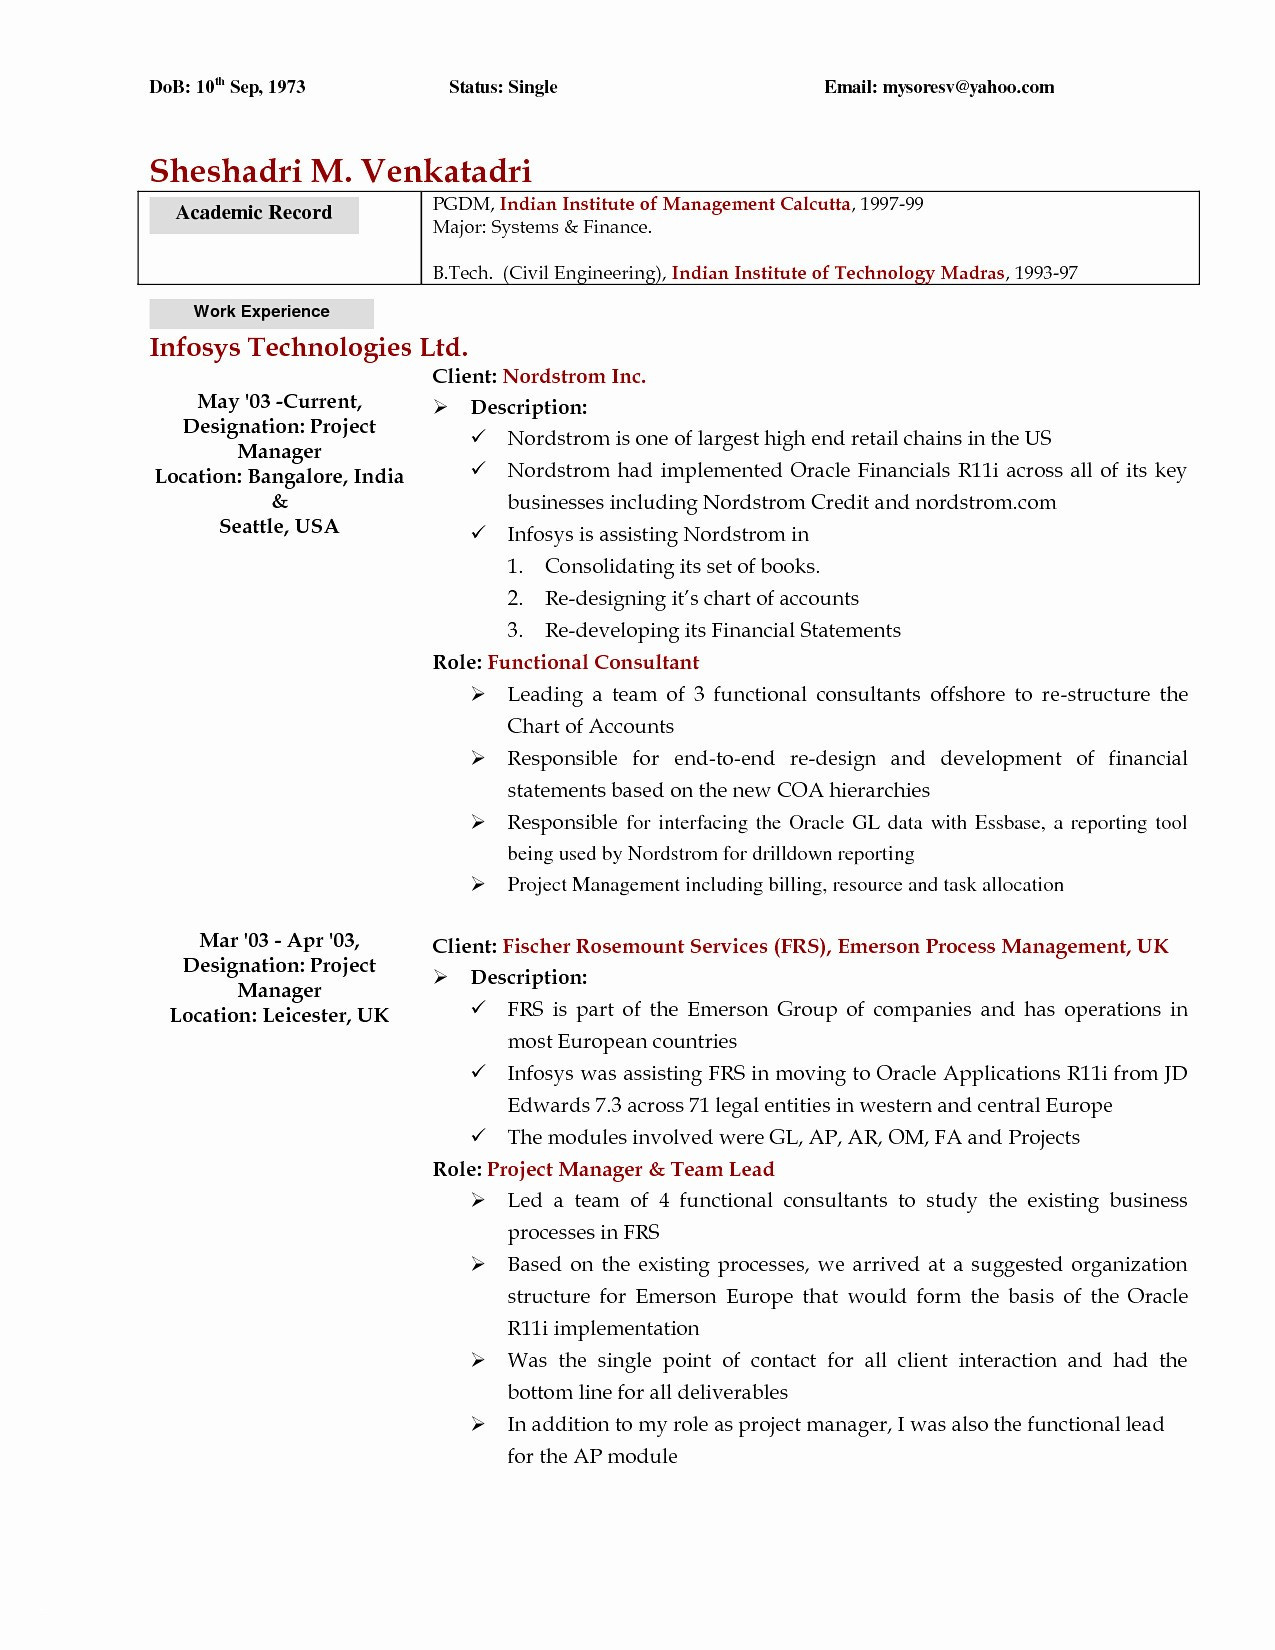 Awesome Free Resume Templates - Free Creative Resume Templates Microsoft Word Reference Fresh